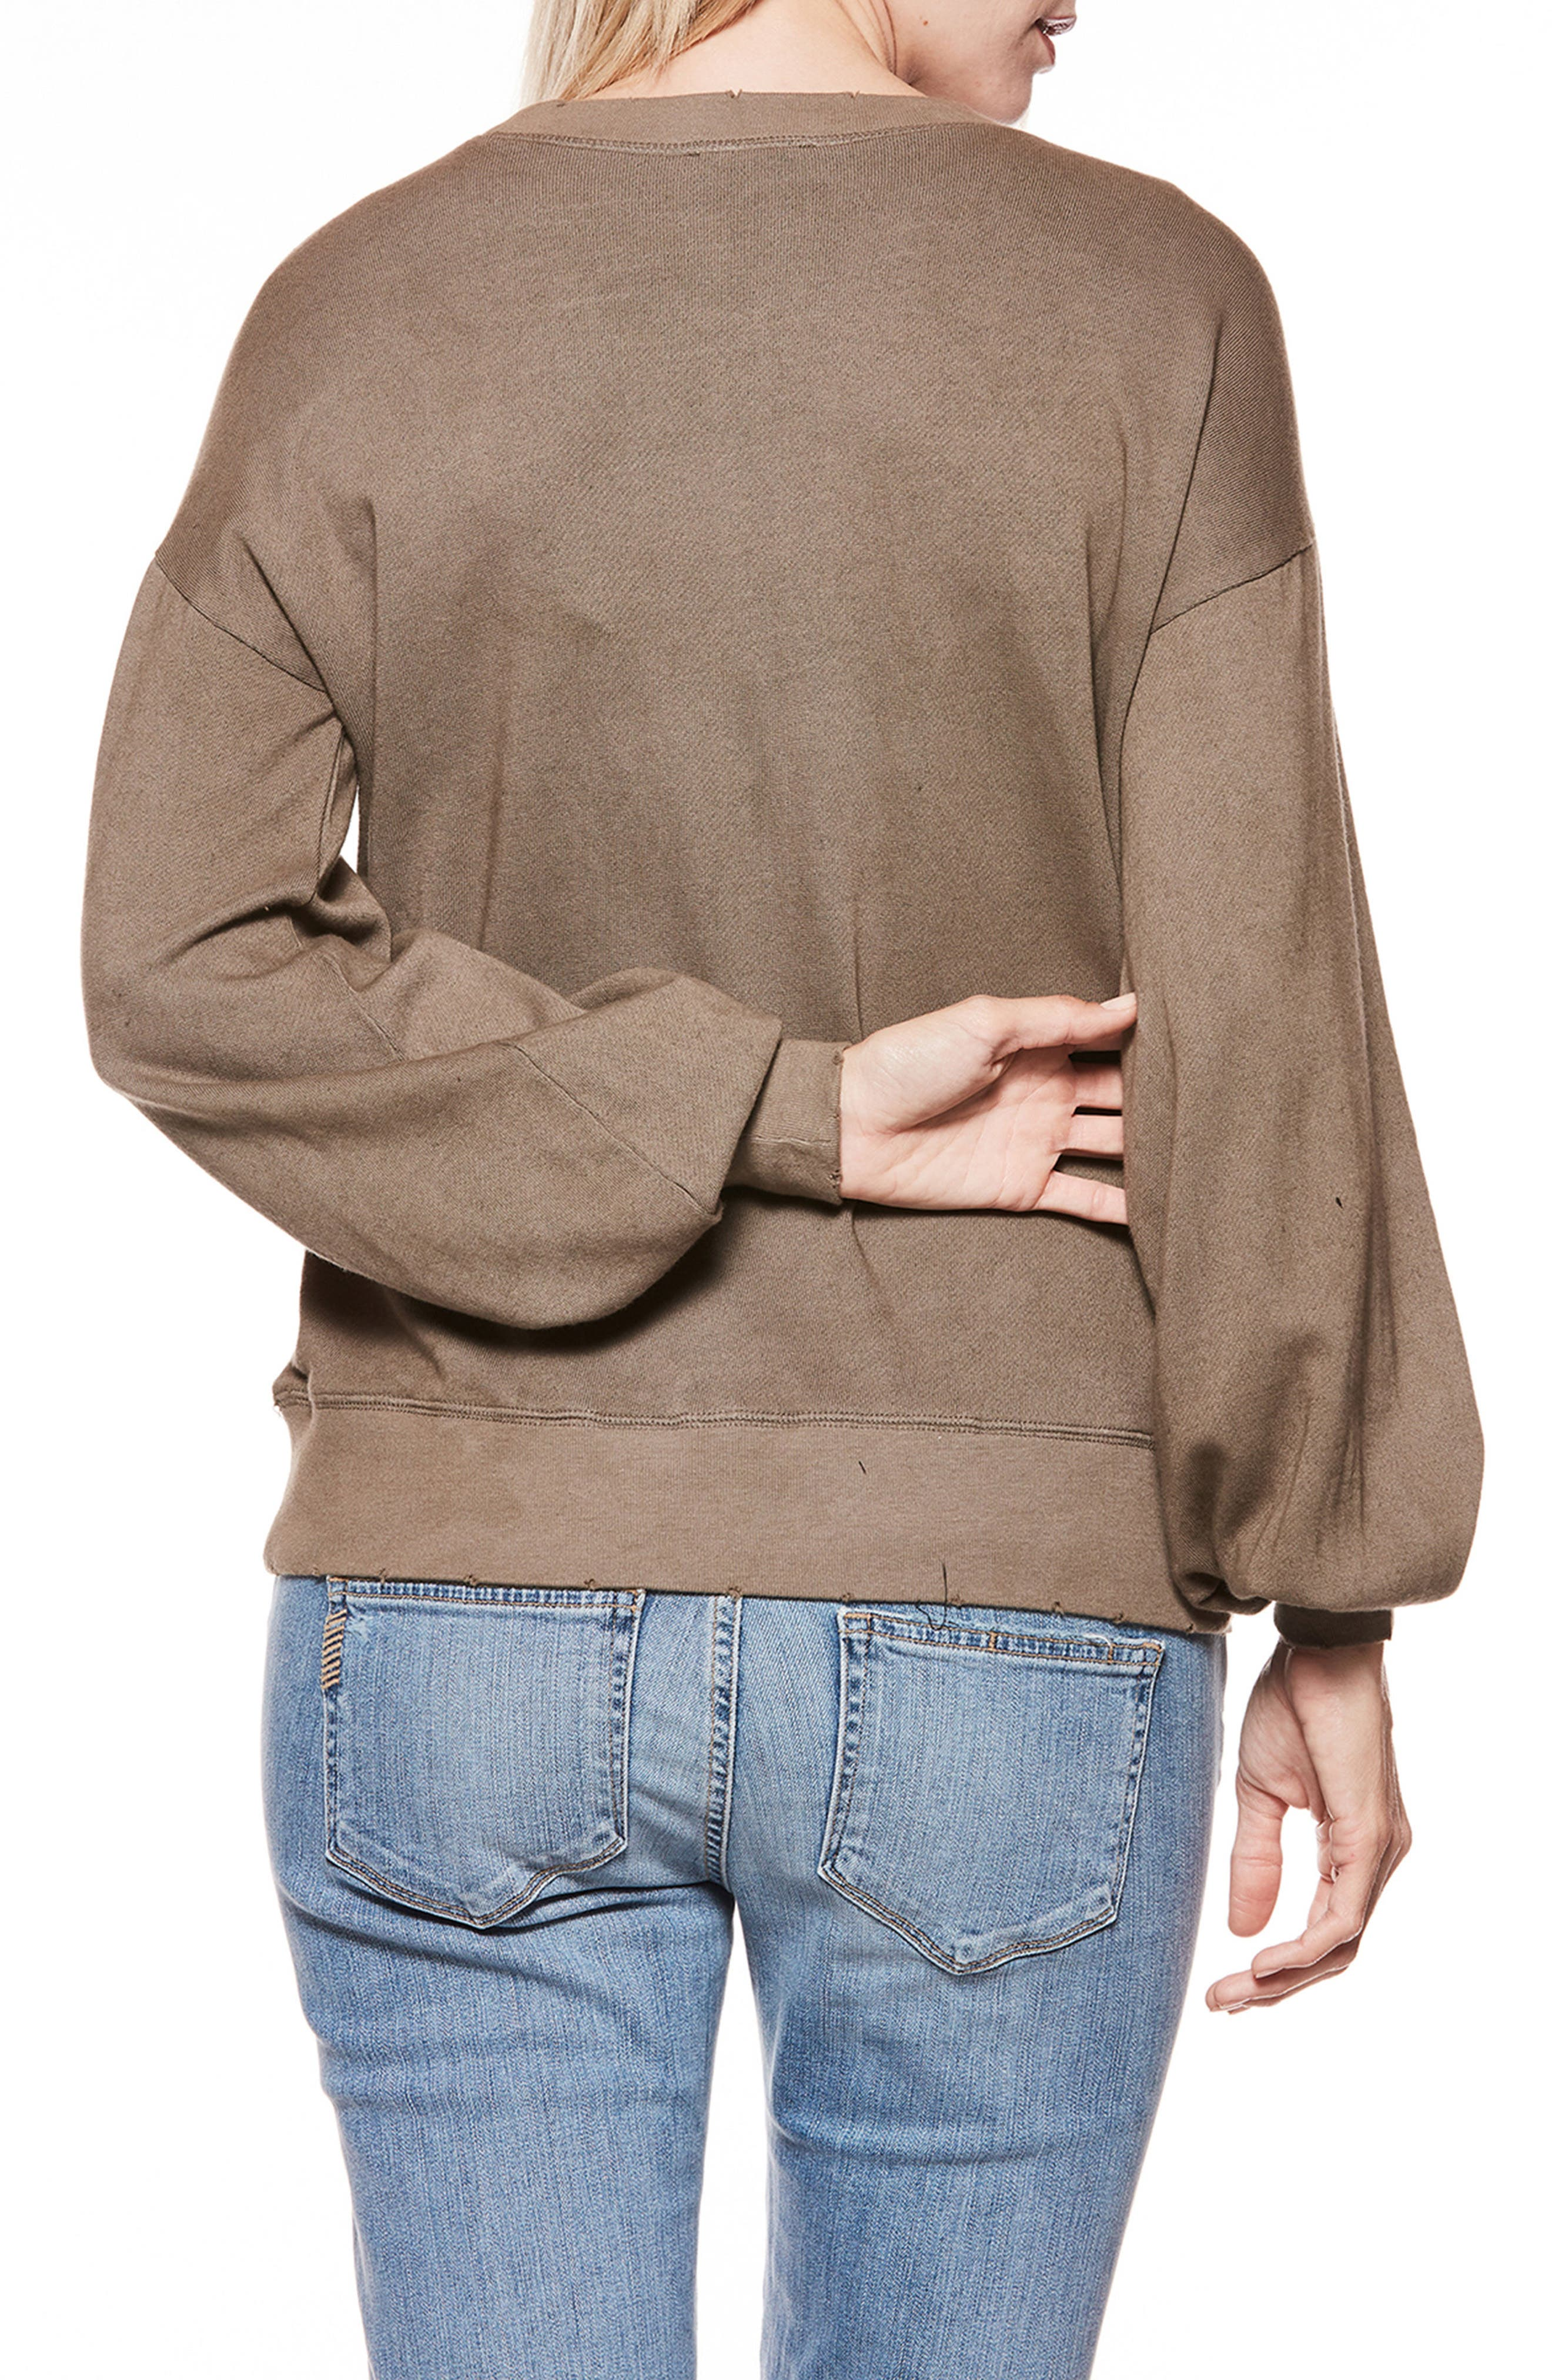 Cortlynn Sweatshirt,                             Alternate thumbnail 2, color,                             TANNED OLIVE